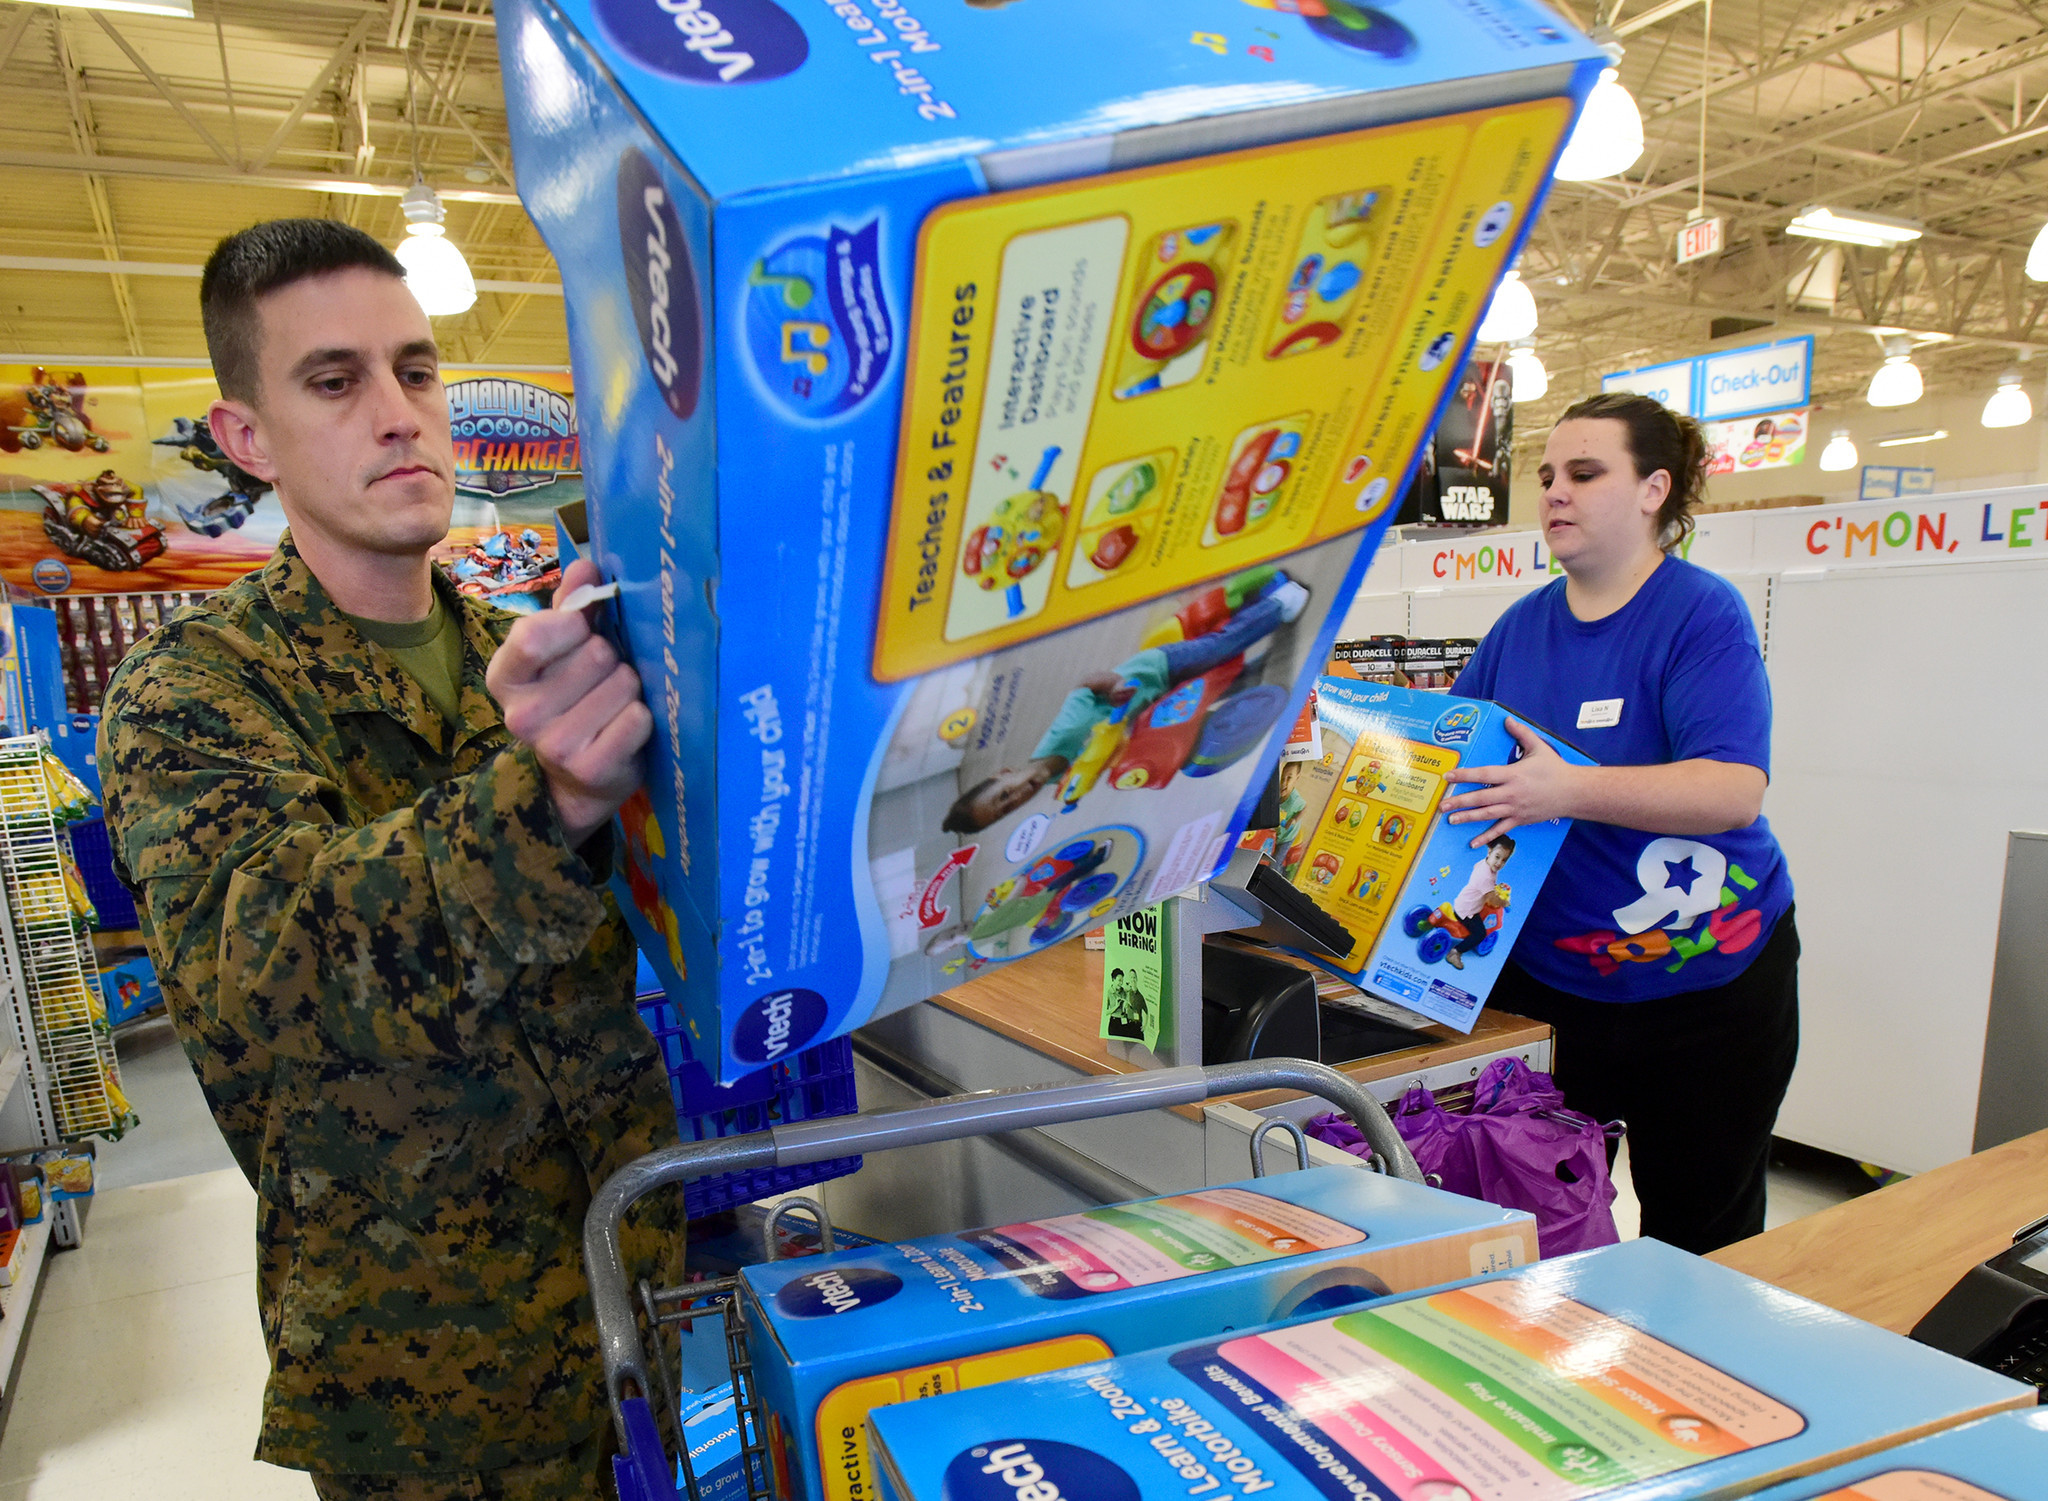 Toys For Tots Volunteer : Toys for tots short on donations for kids in need issues appeal